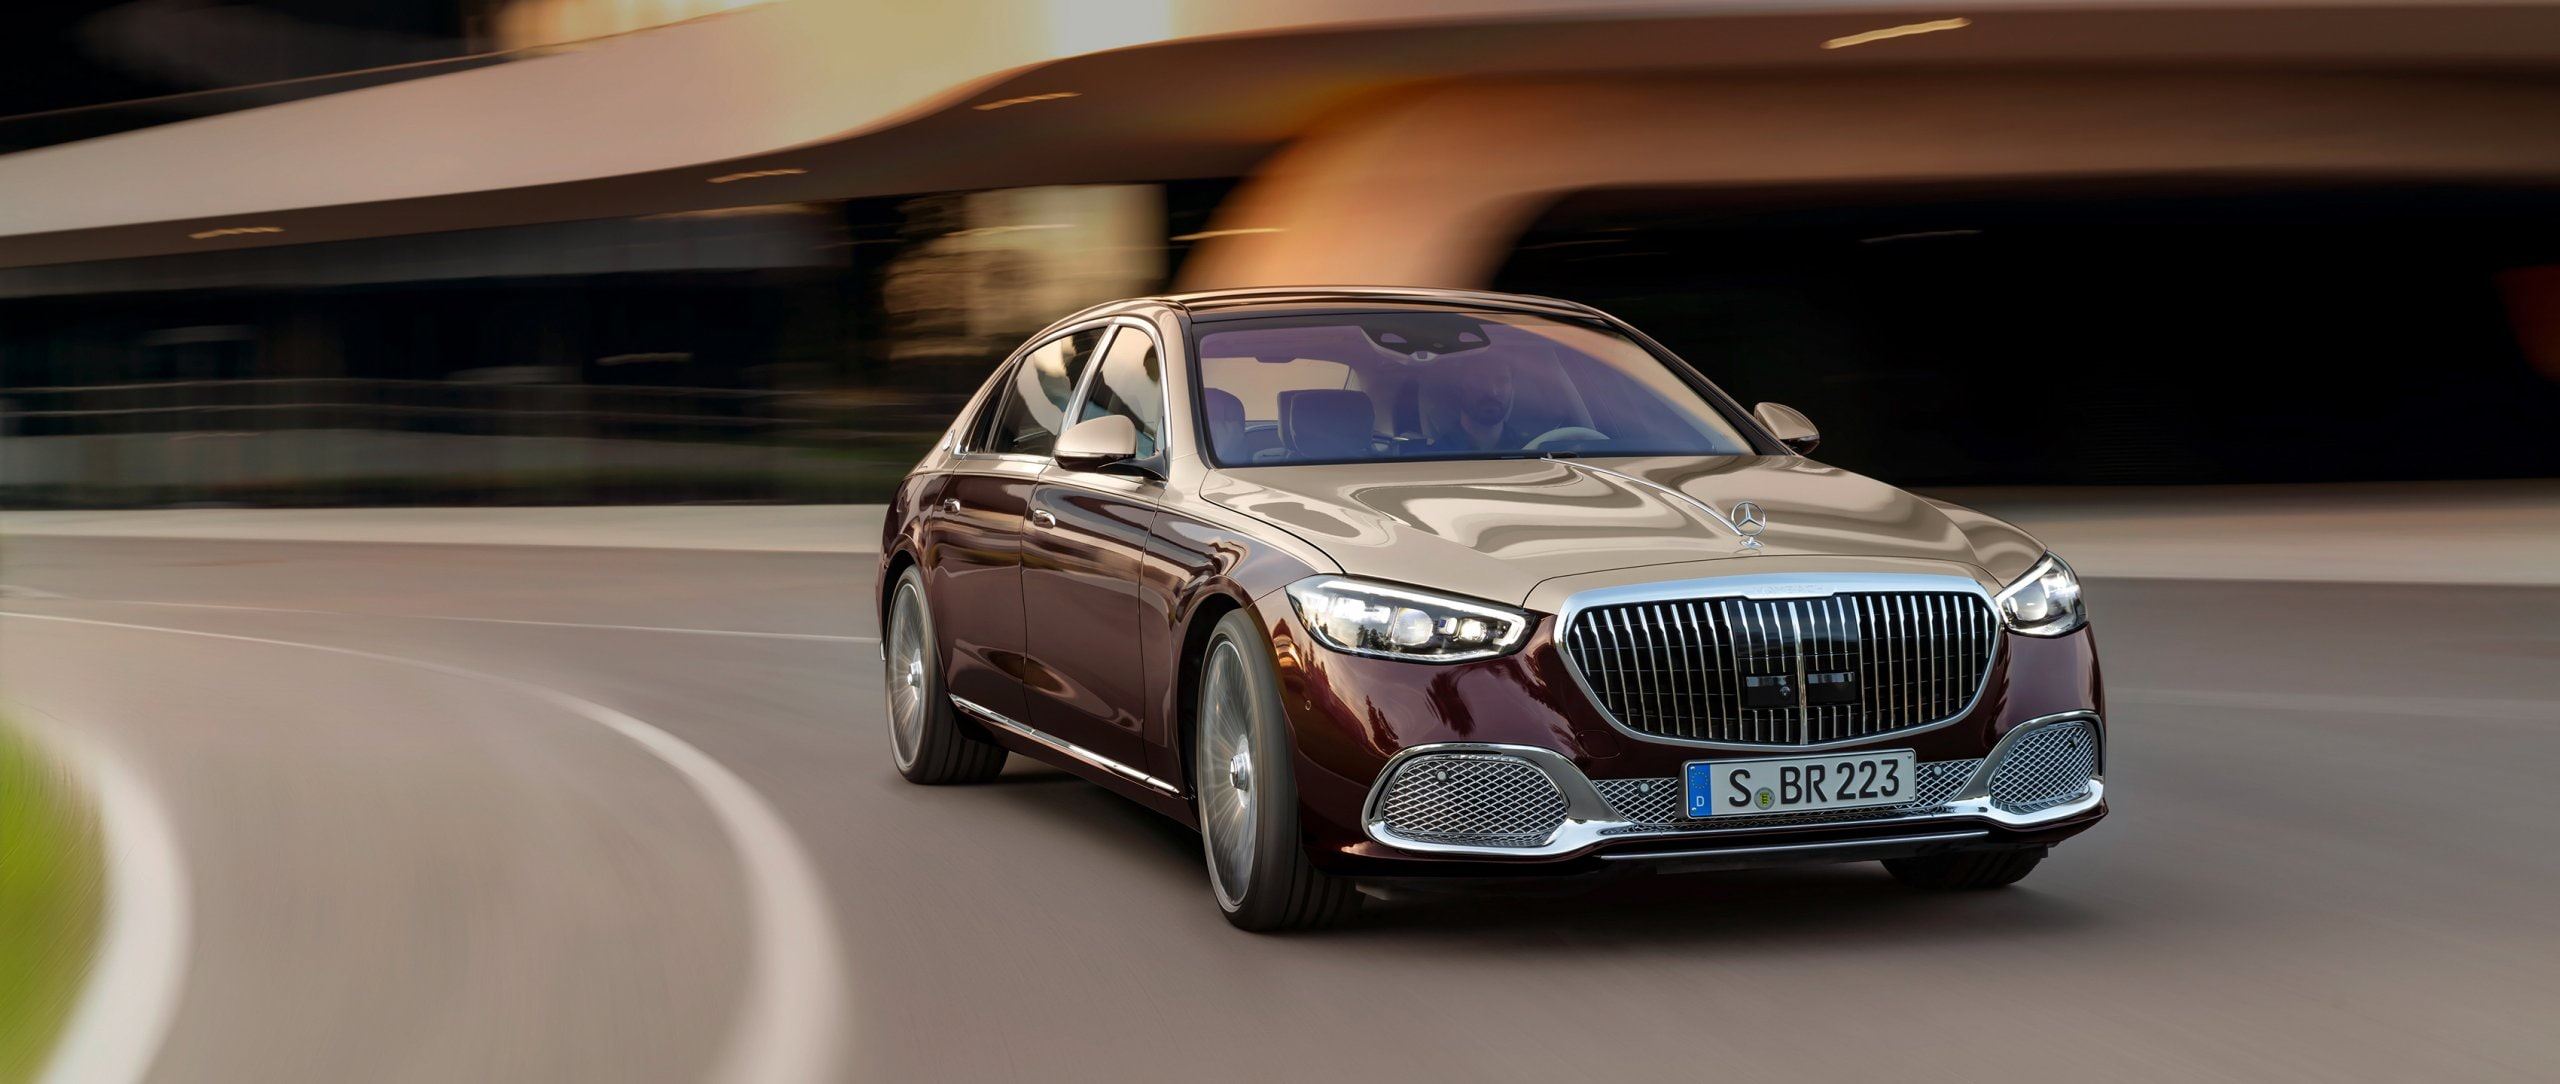 The 2021 Mercedes-Maybach S-Class (Z 223) in the two-tone paintwork designo kalahari gold and rubellite red